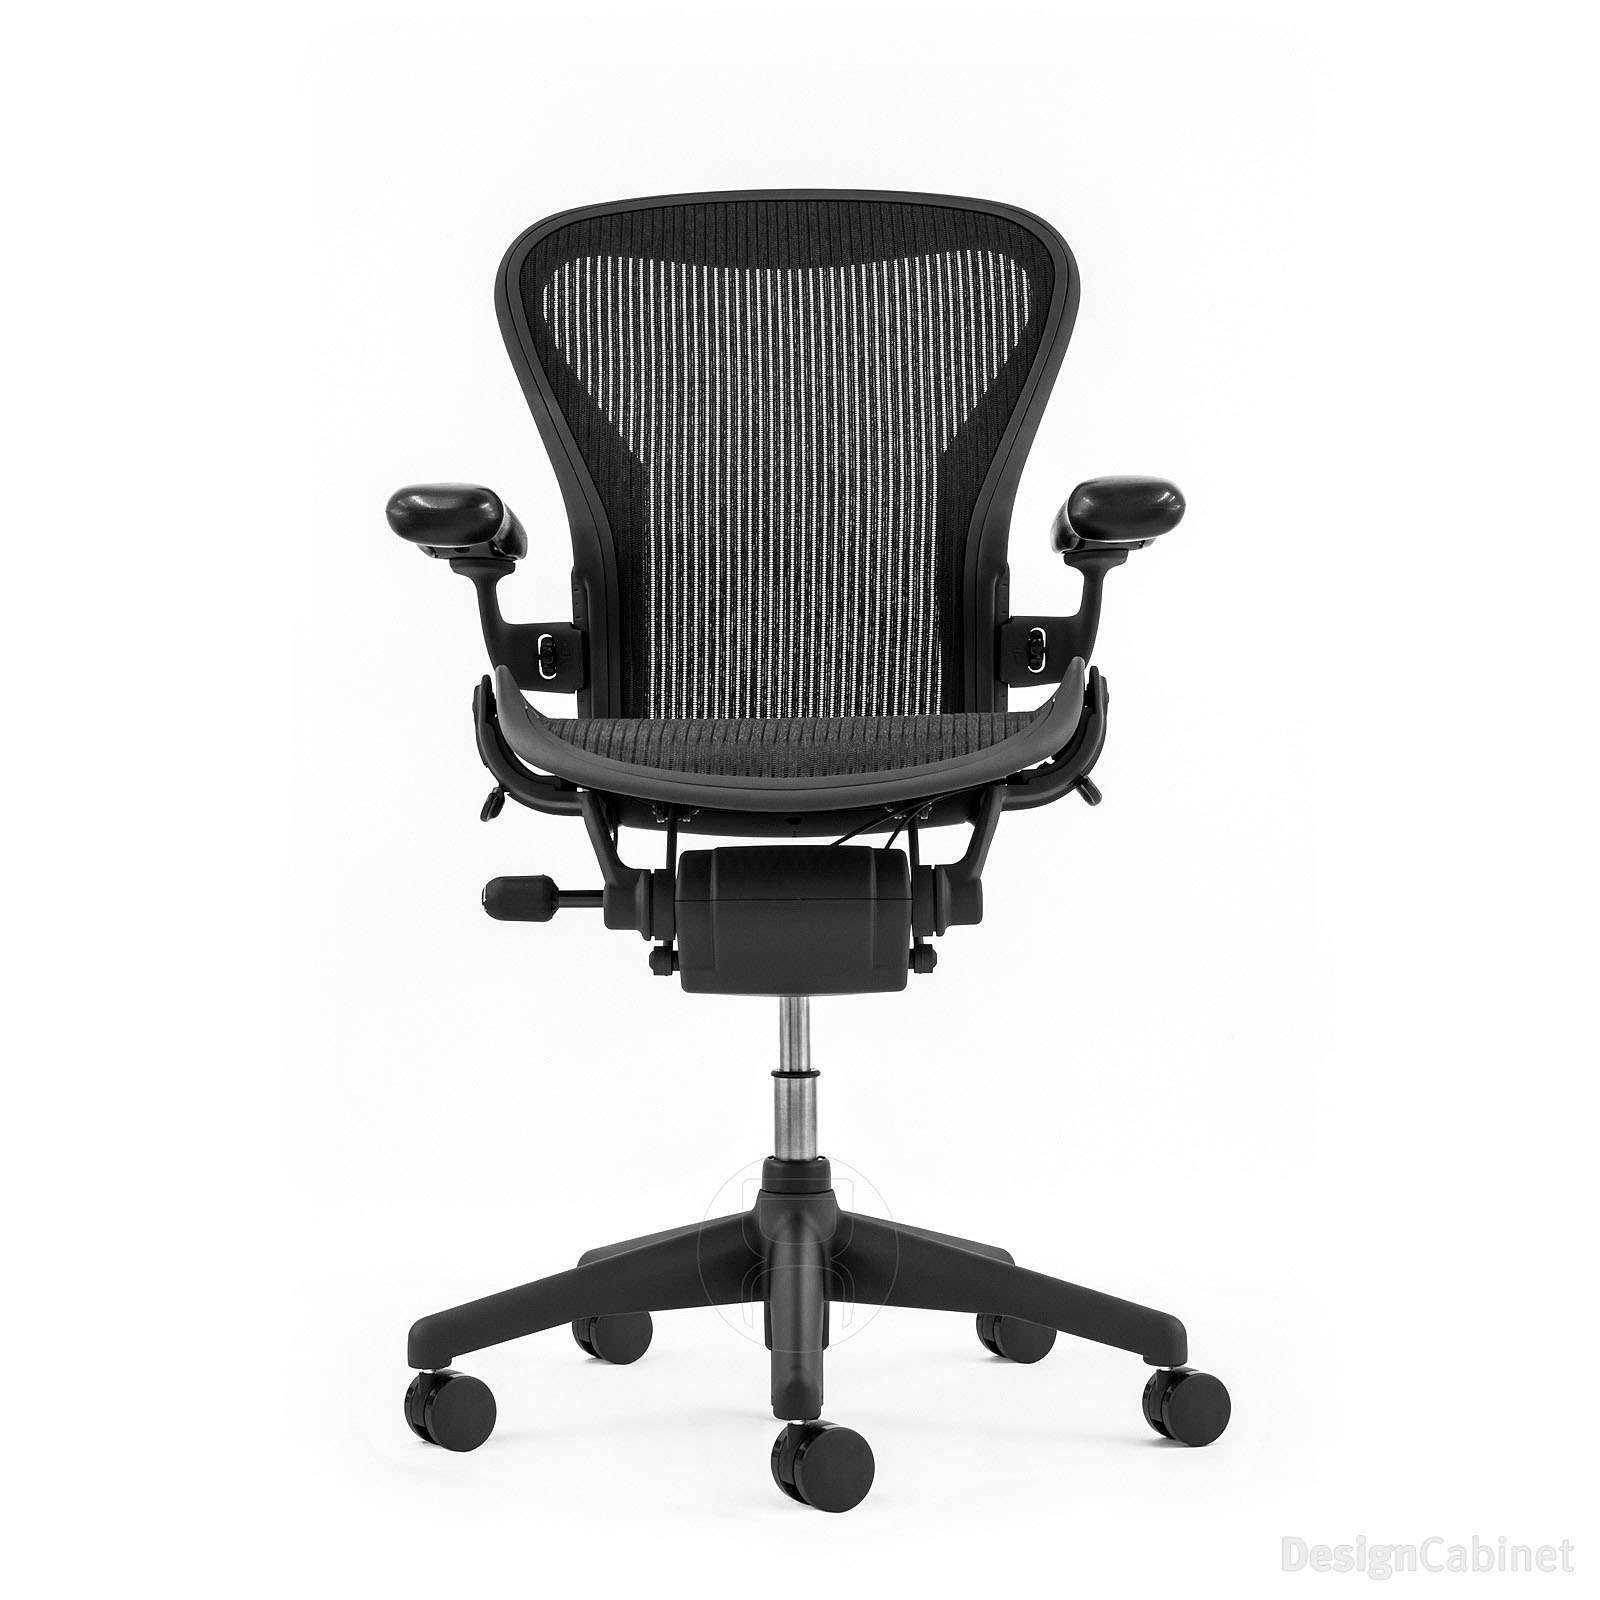 aeron chair canada clear plastic covers new herman miller rtty1